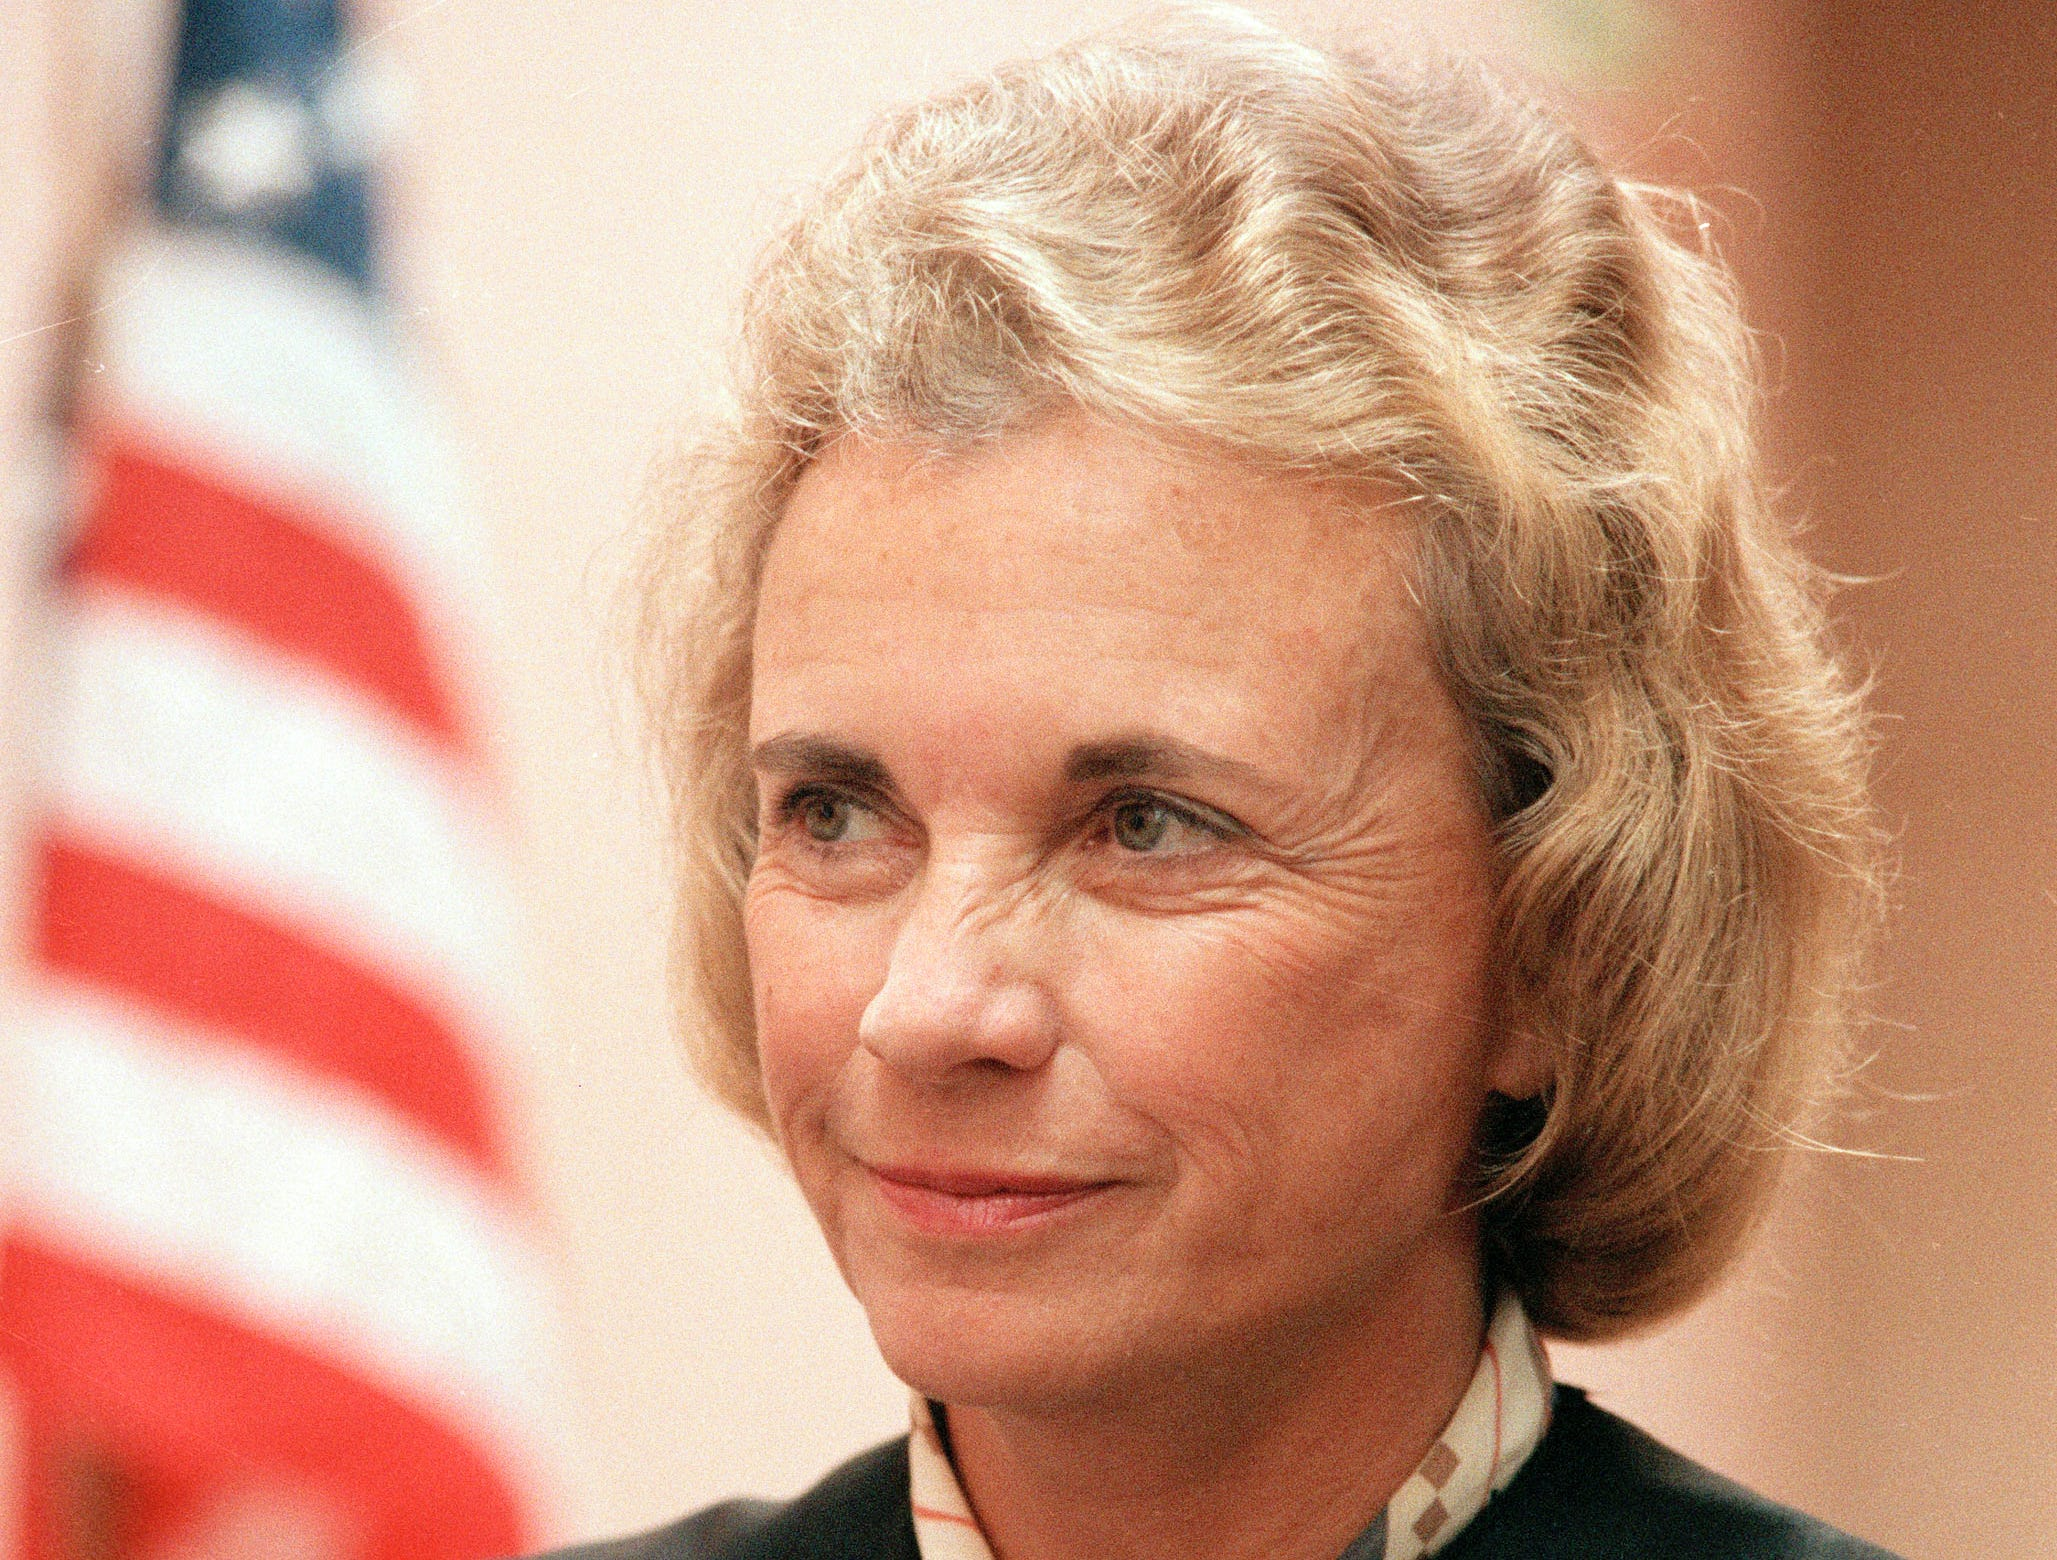 The Honorable Sandra Day O'Connor, justice of the U.S. Supreme Court, is shown, June 24, 1985.